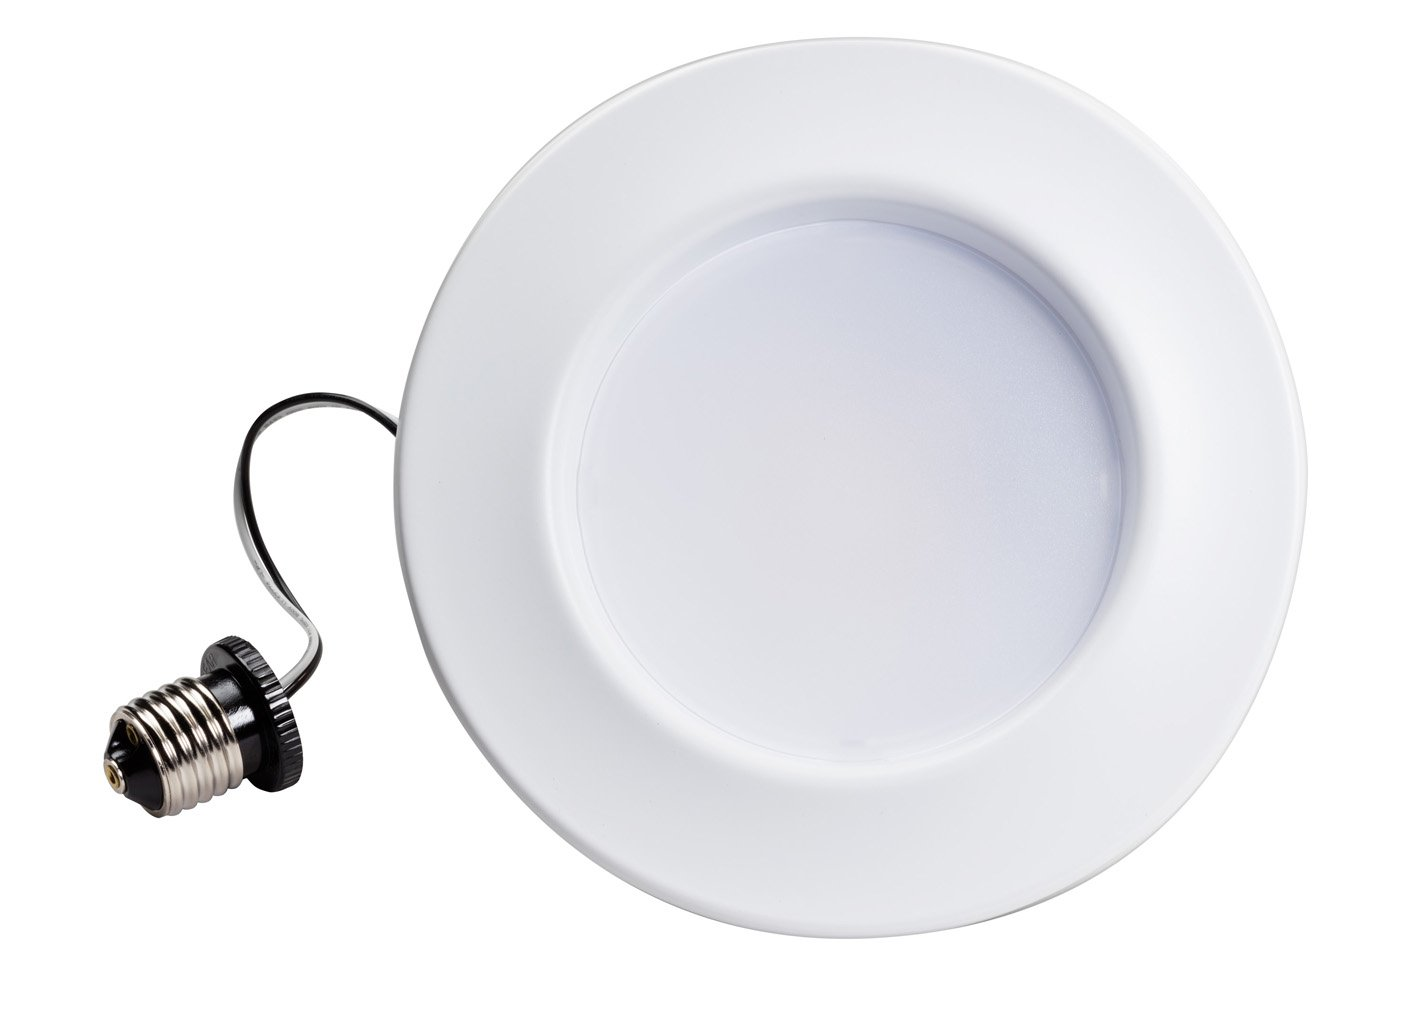 Philips 801035 65W Equivalent Dimmable Soft White with Warm Glow Effect LED Downlight, 5-6''